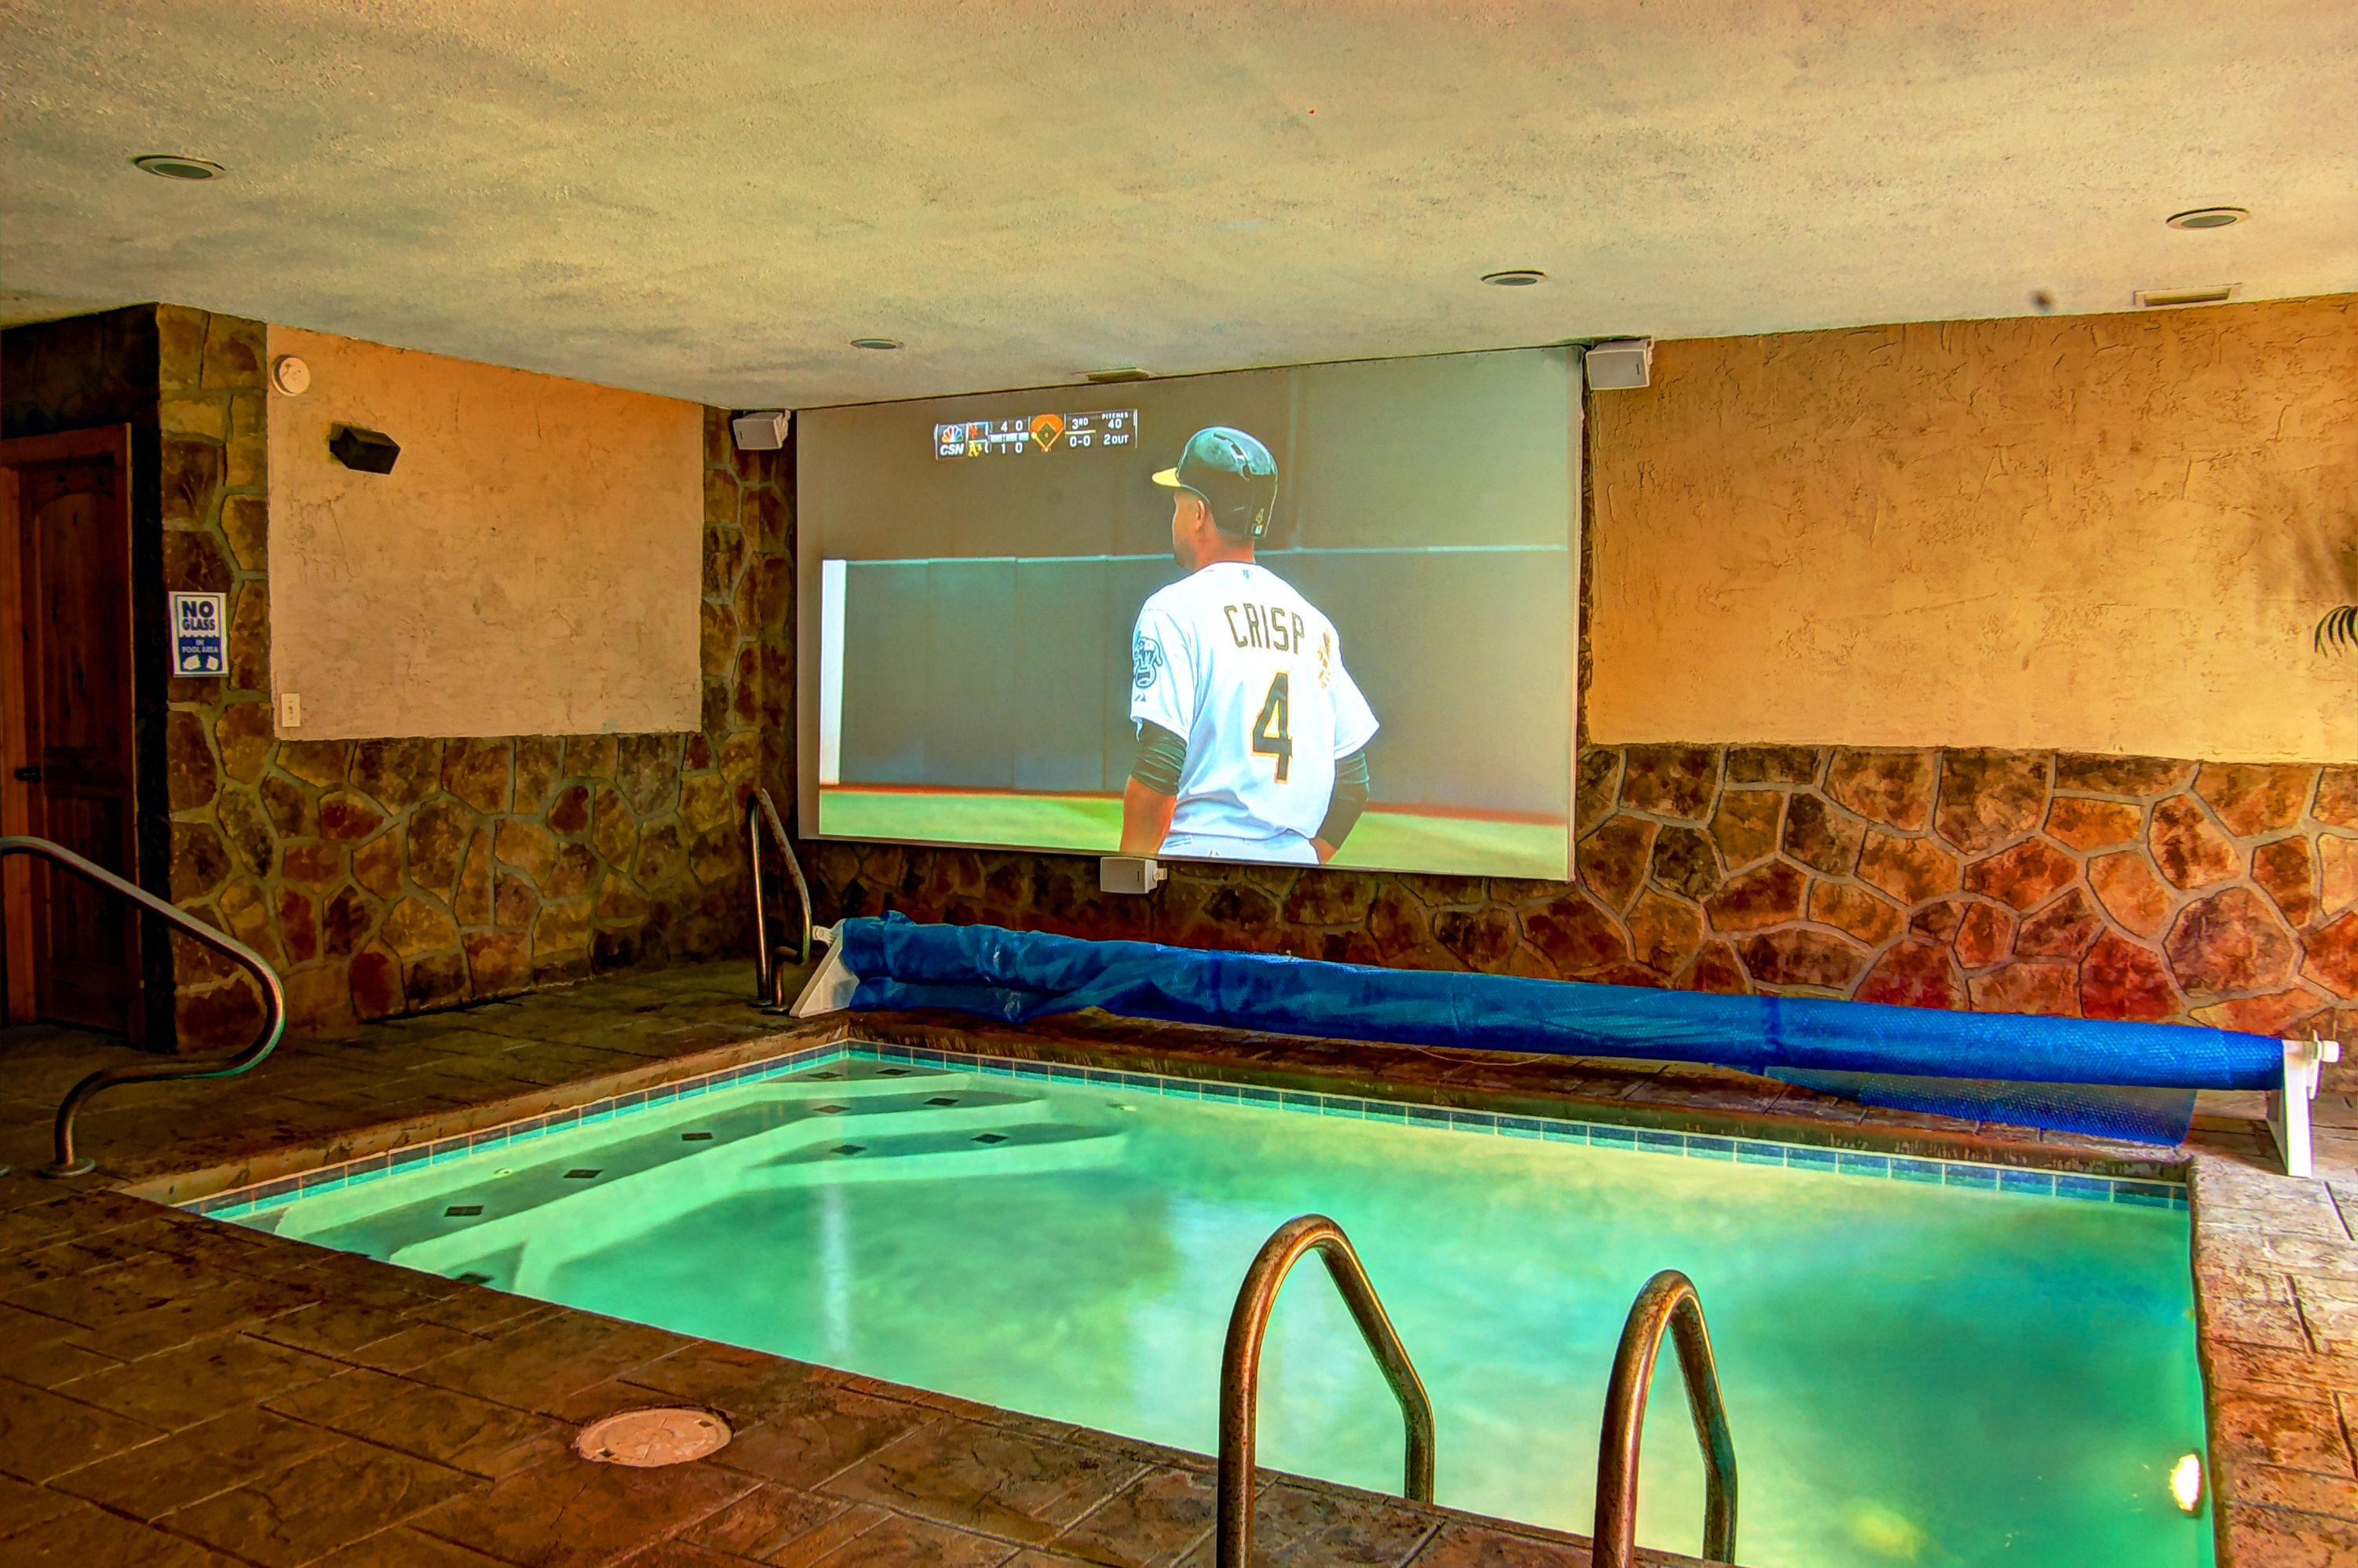 Enjoy your own private indoor pool theater at Skinny dippin pool